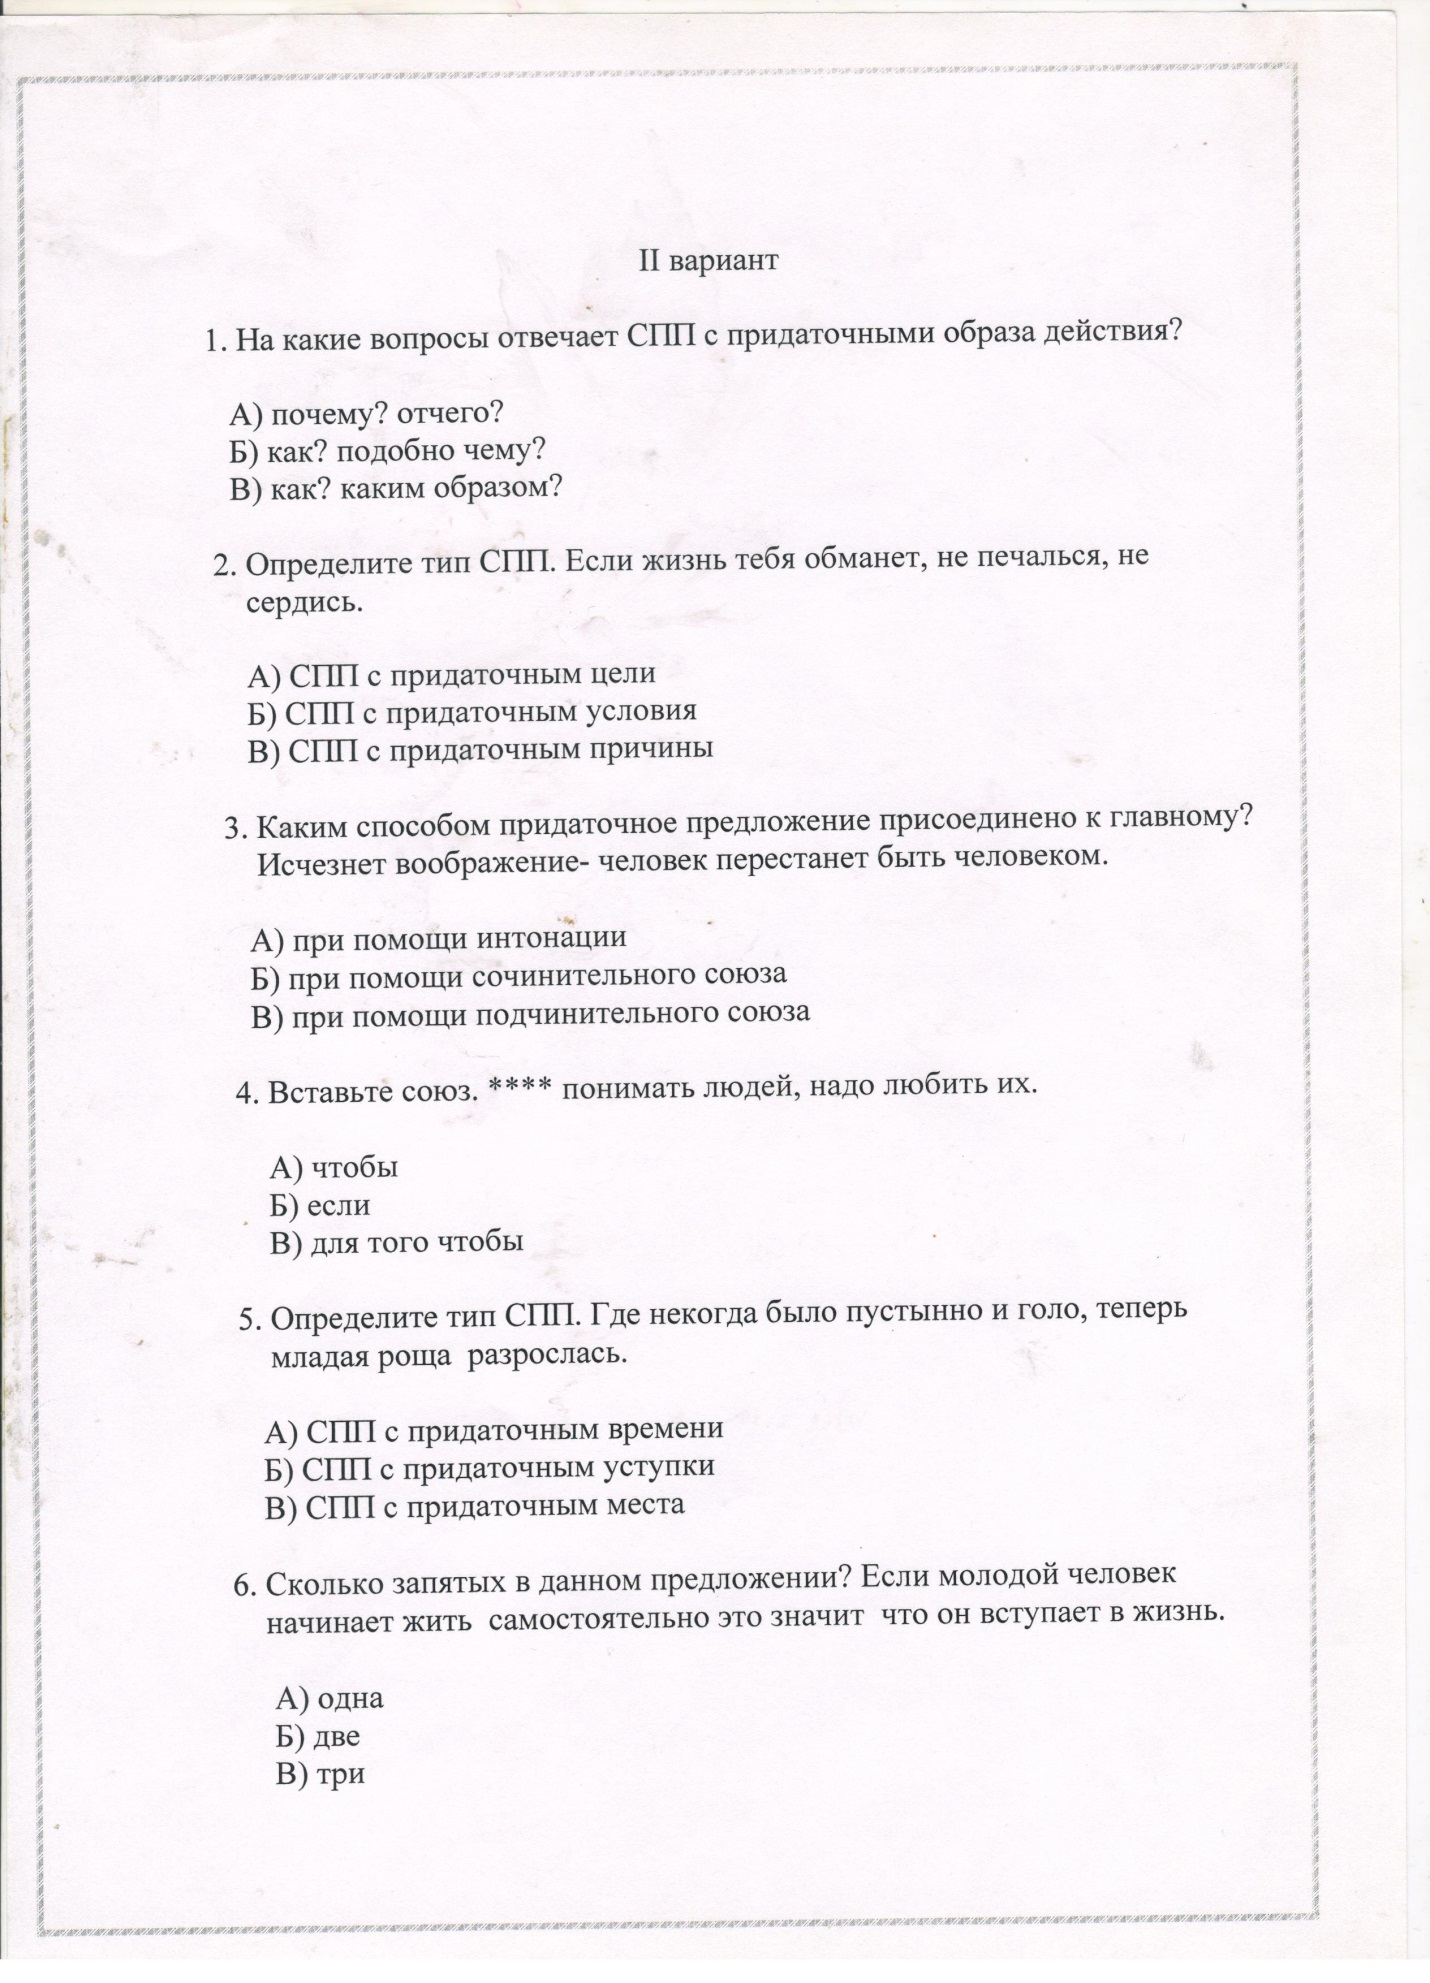 C:\Users\Анара\Documents\Scanned Documents\Рисунок (24).jpg